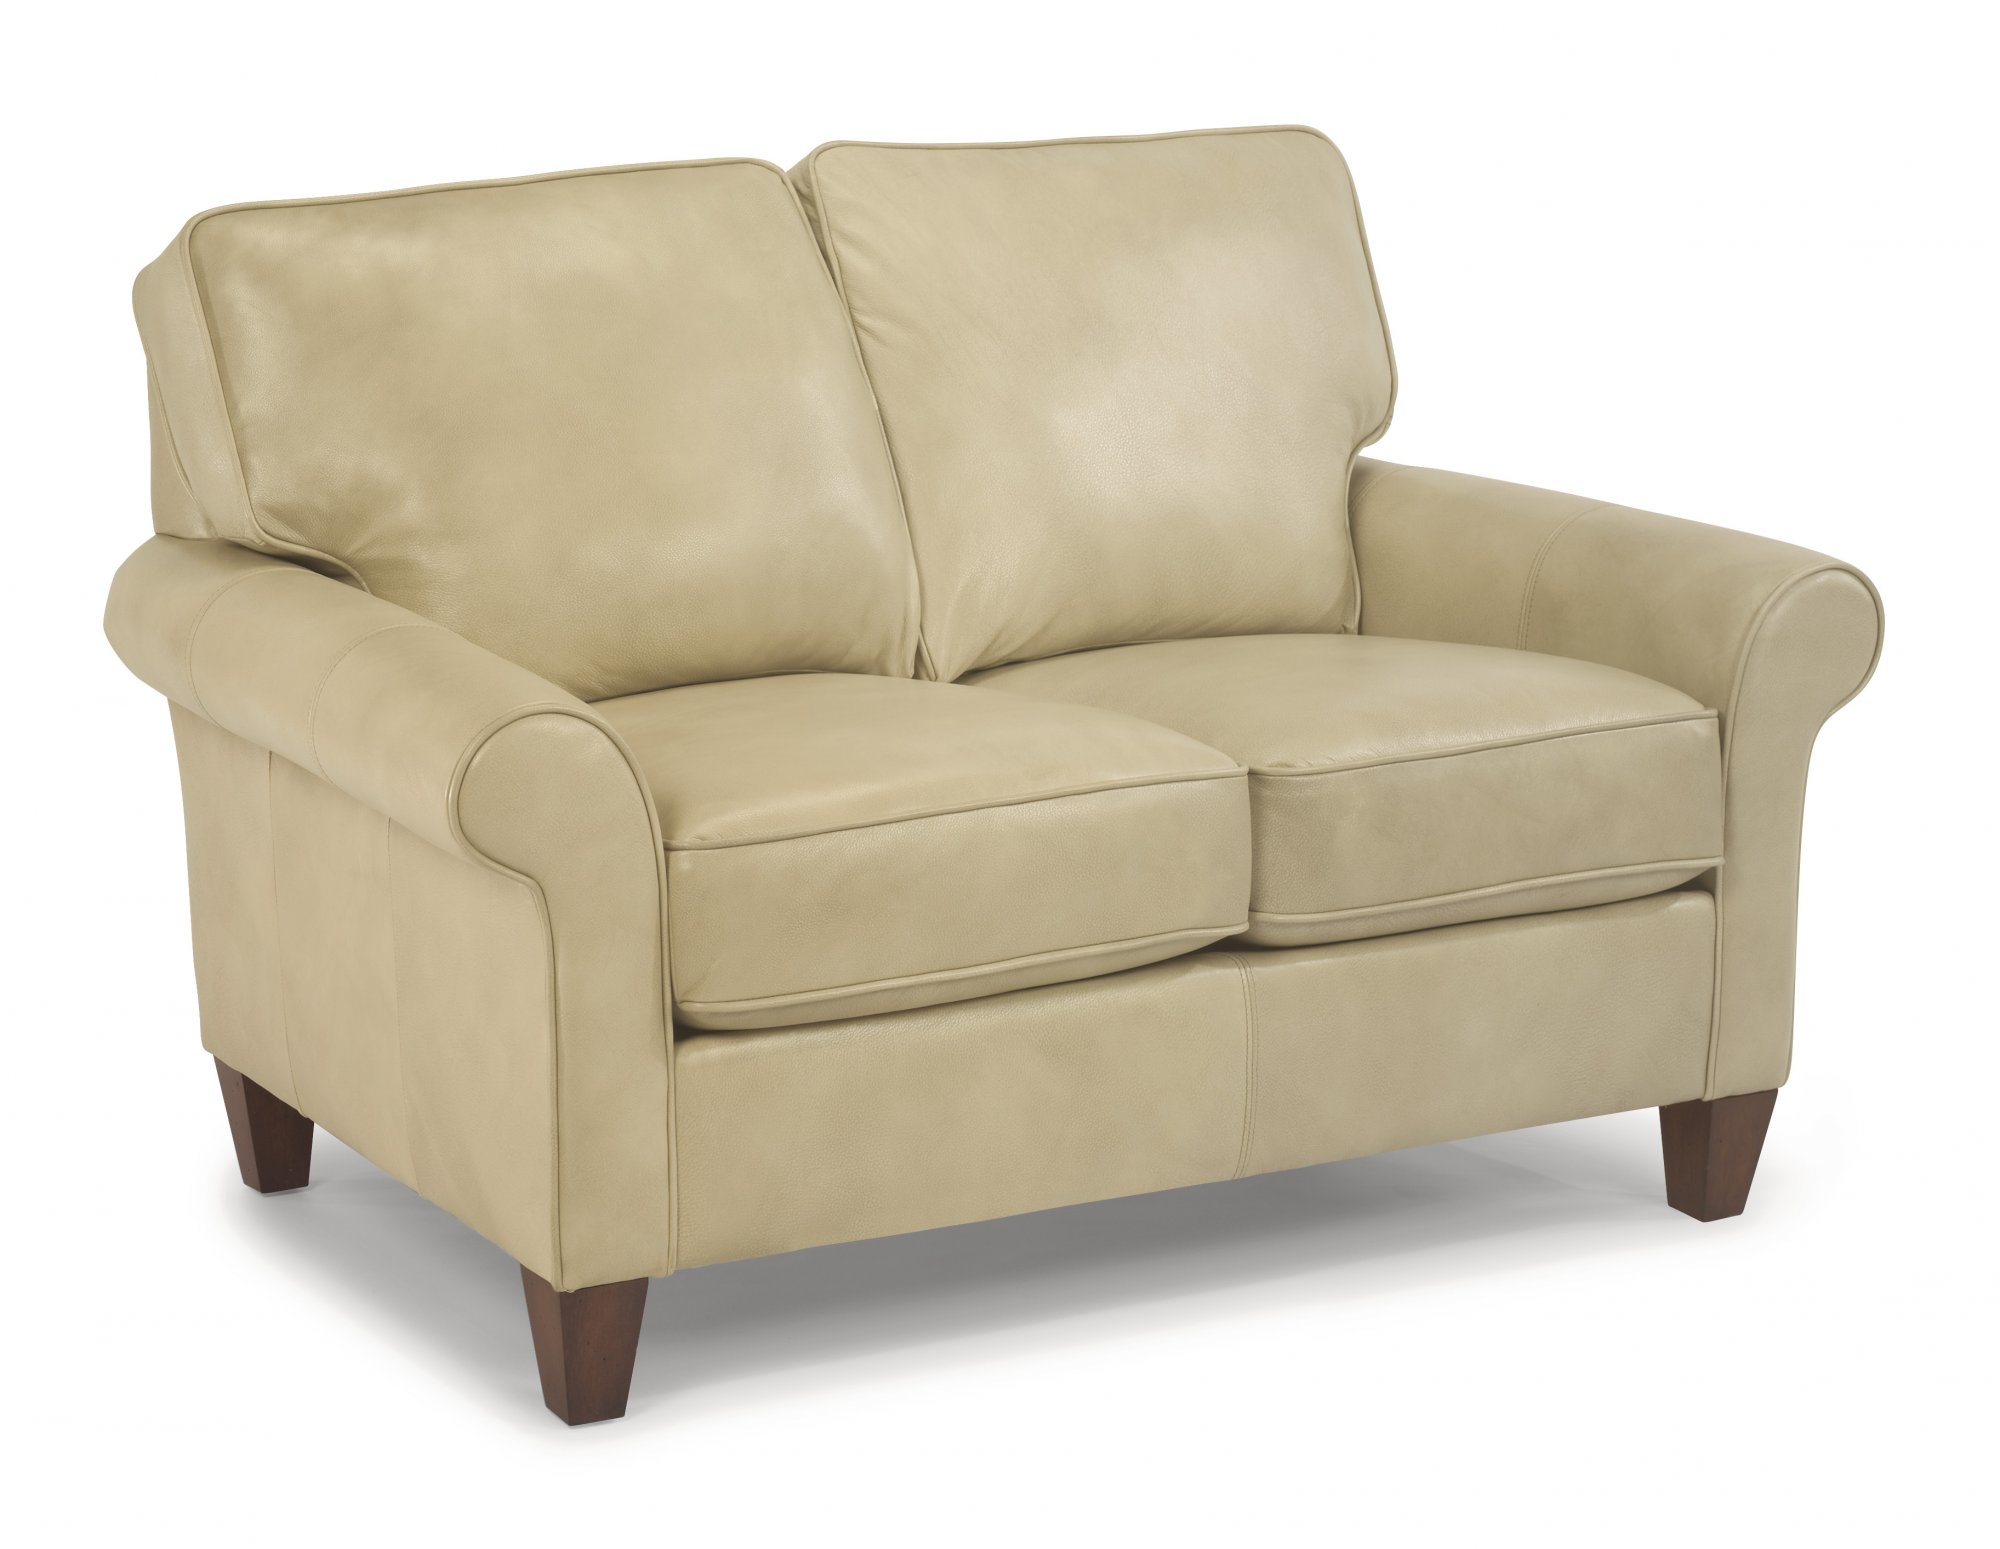 Outstanding Flexsteel Westside Leather Loveseat 3979 20 Appliance Center Caraccident5 Cool Chair Designs And Ideas Caraccident5Info